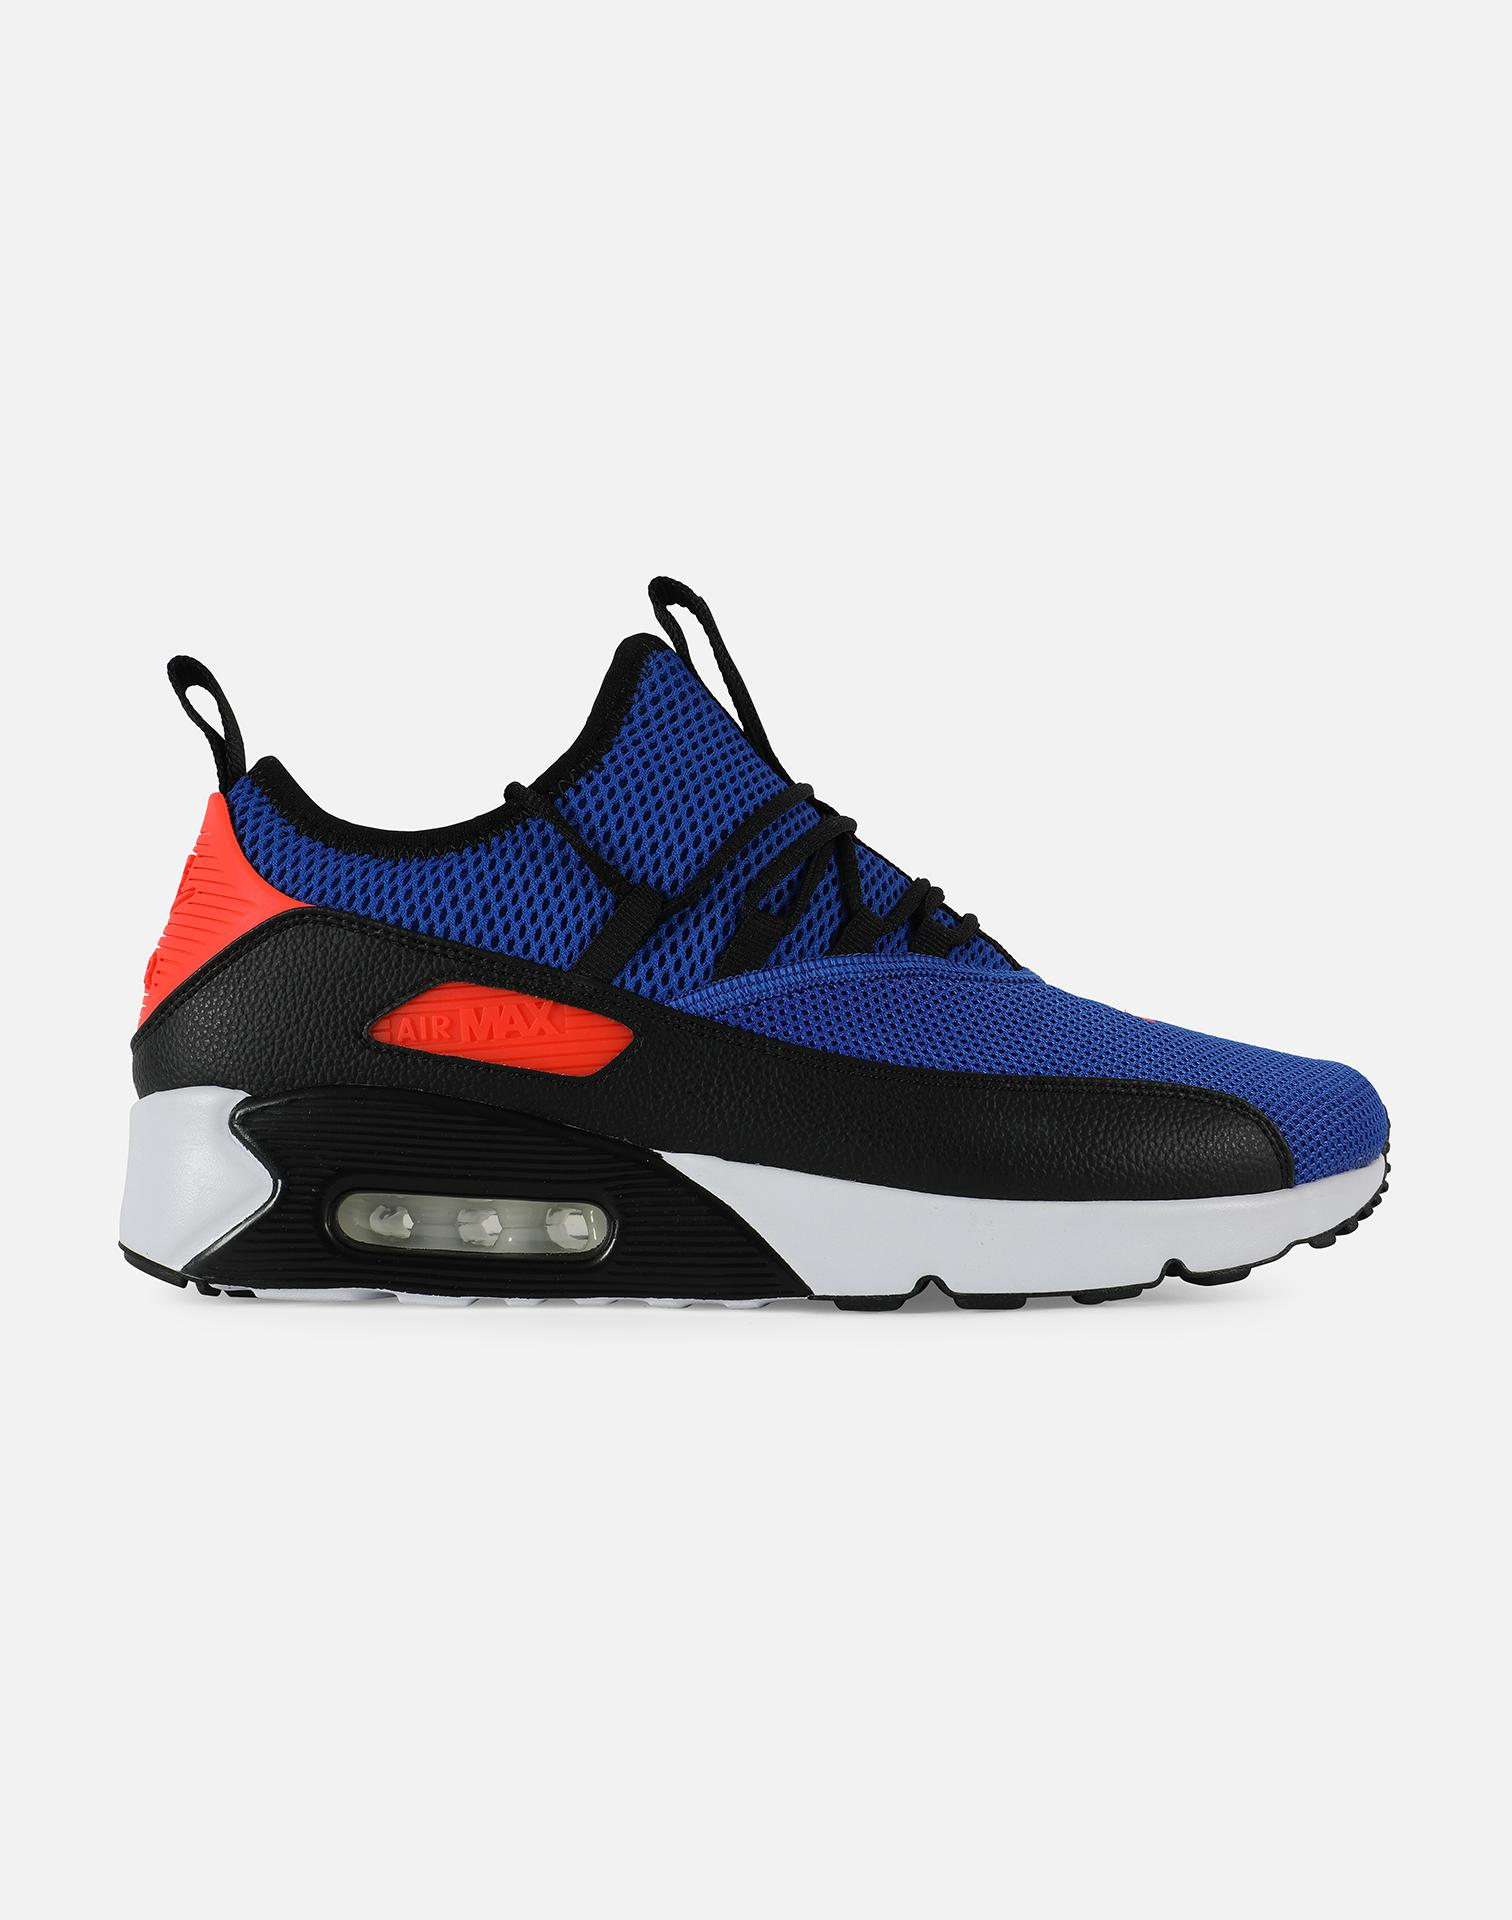 Lyst - Nike Air Max 90 Ez in Blue for Men a170ba3e6